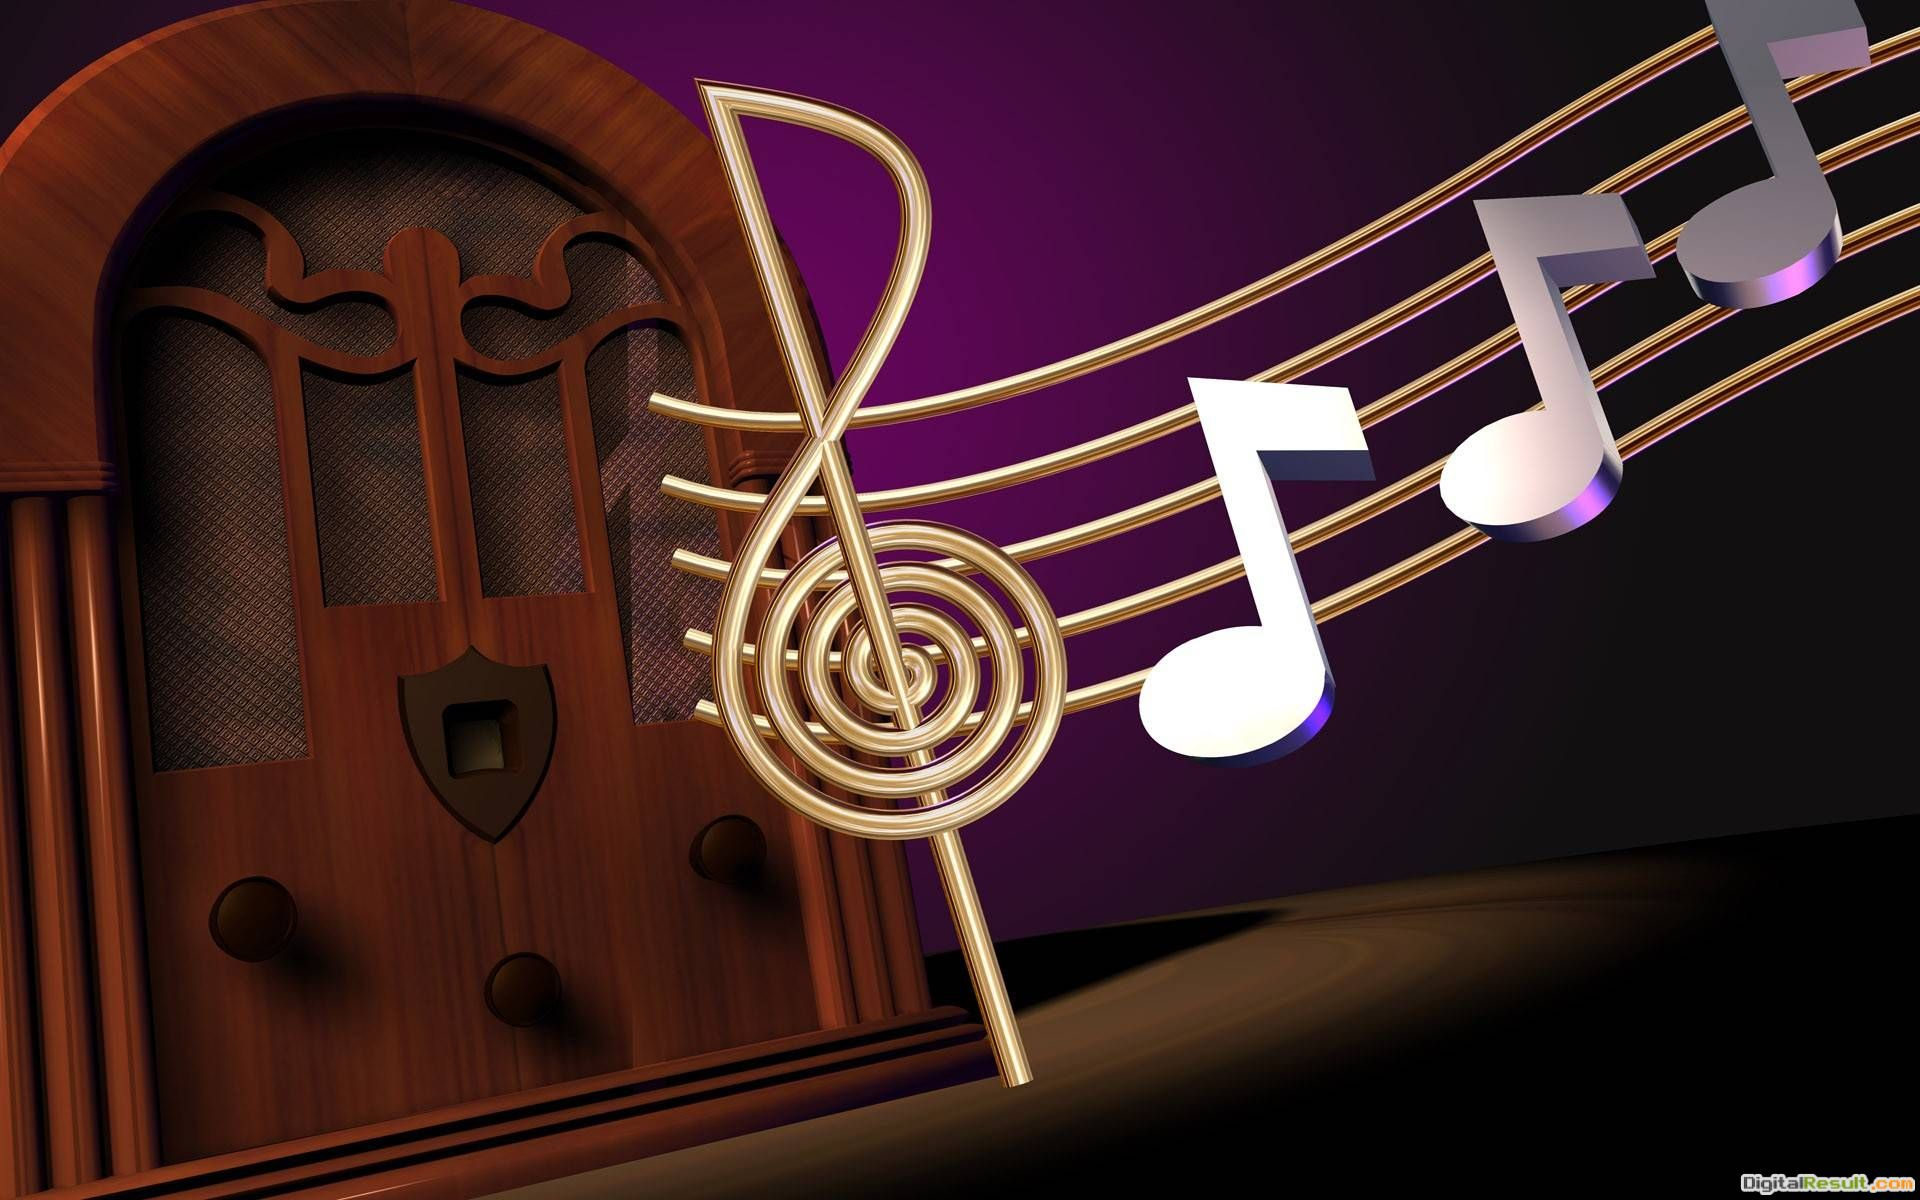 Radio Clef 1920×1200 Wallpaper 2164436 563